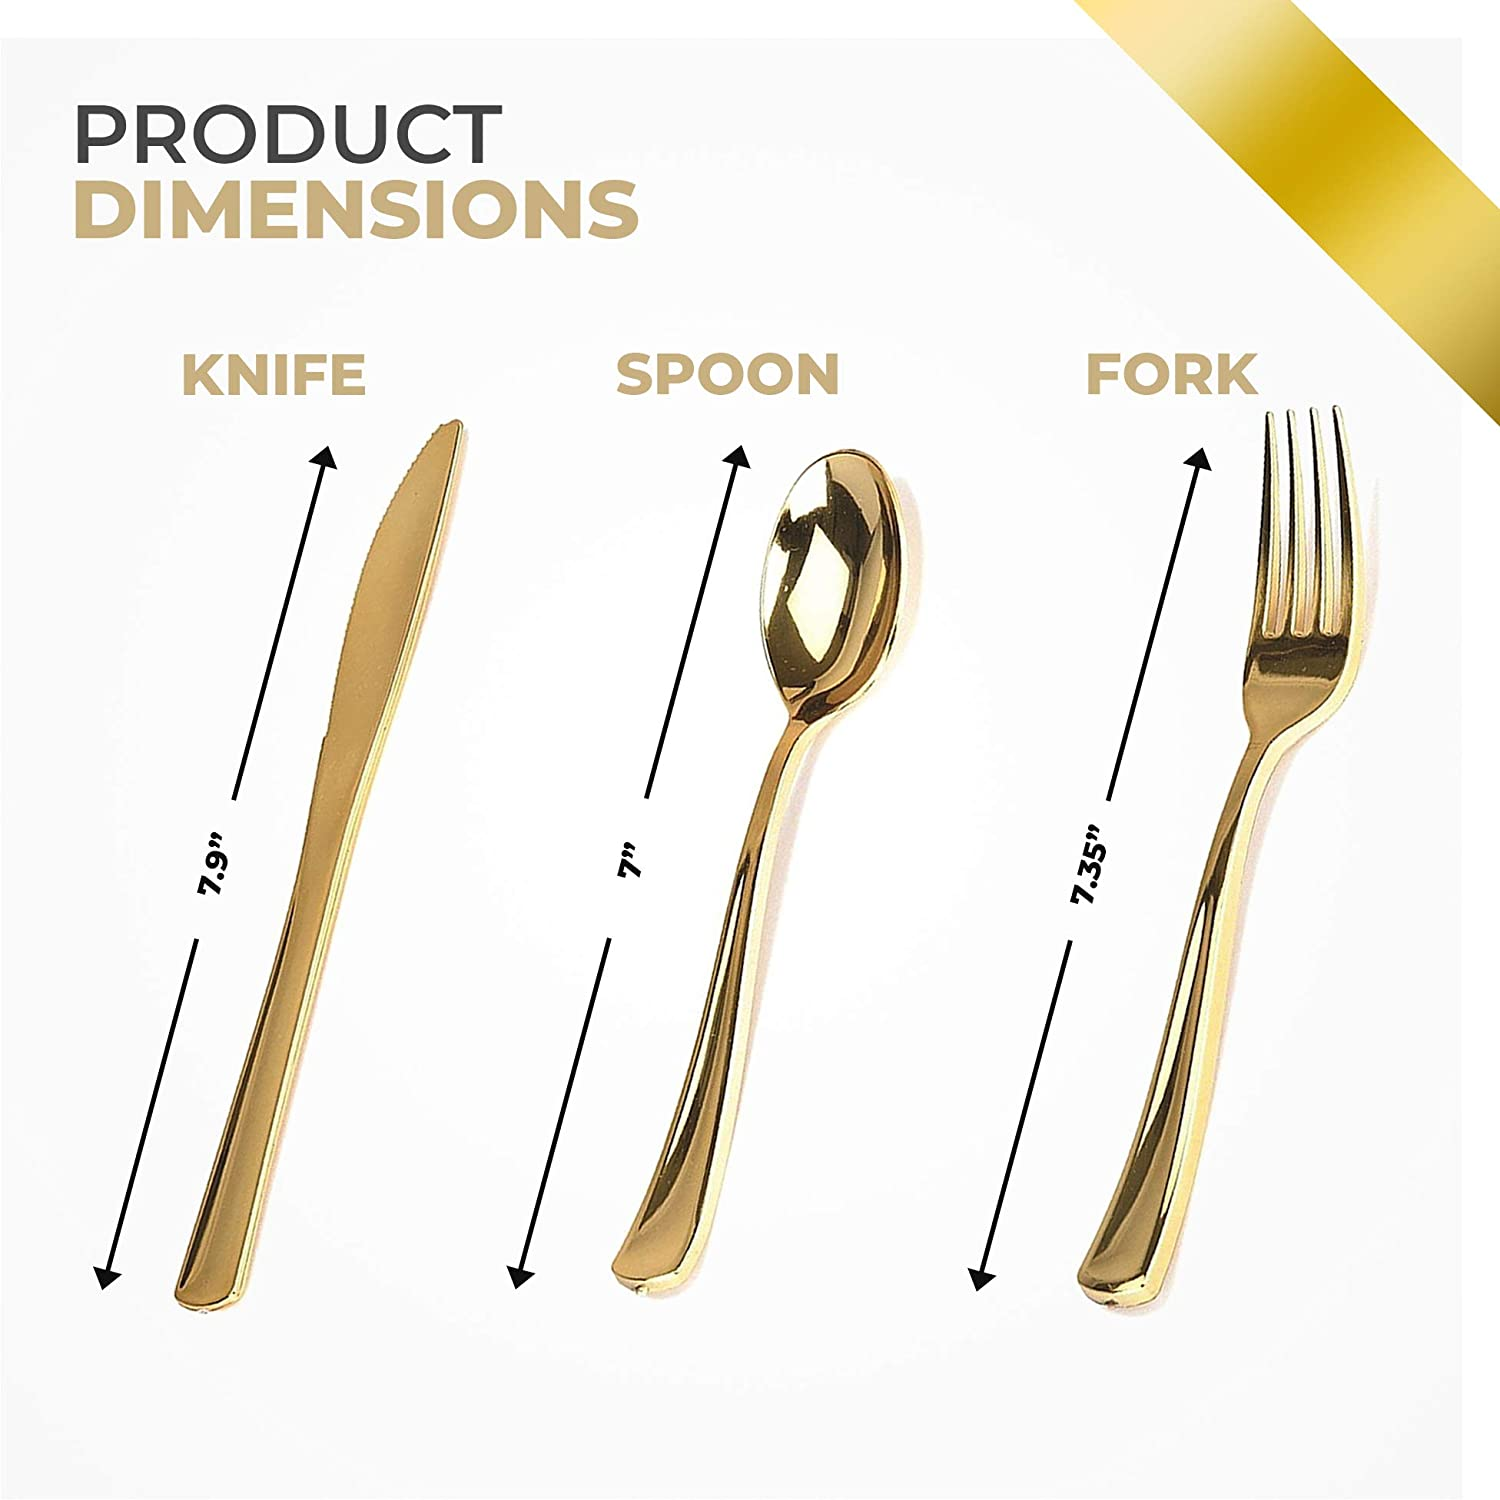 Shower Premium Plastic Cutlery Shiny Metallic Gold All Occasion Party Wedding Service For 100 At 68 Cents Per Place Setting!